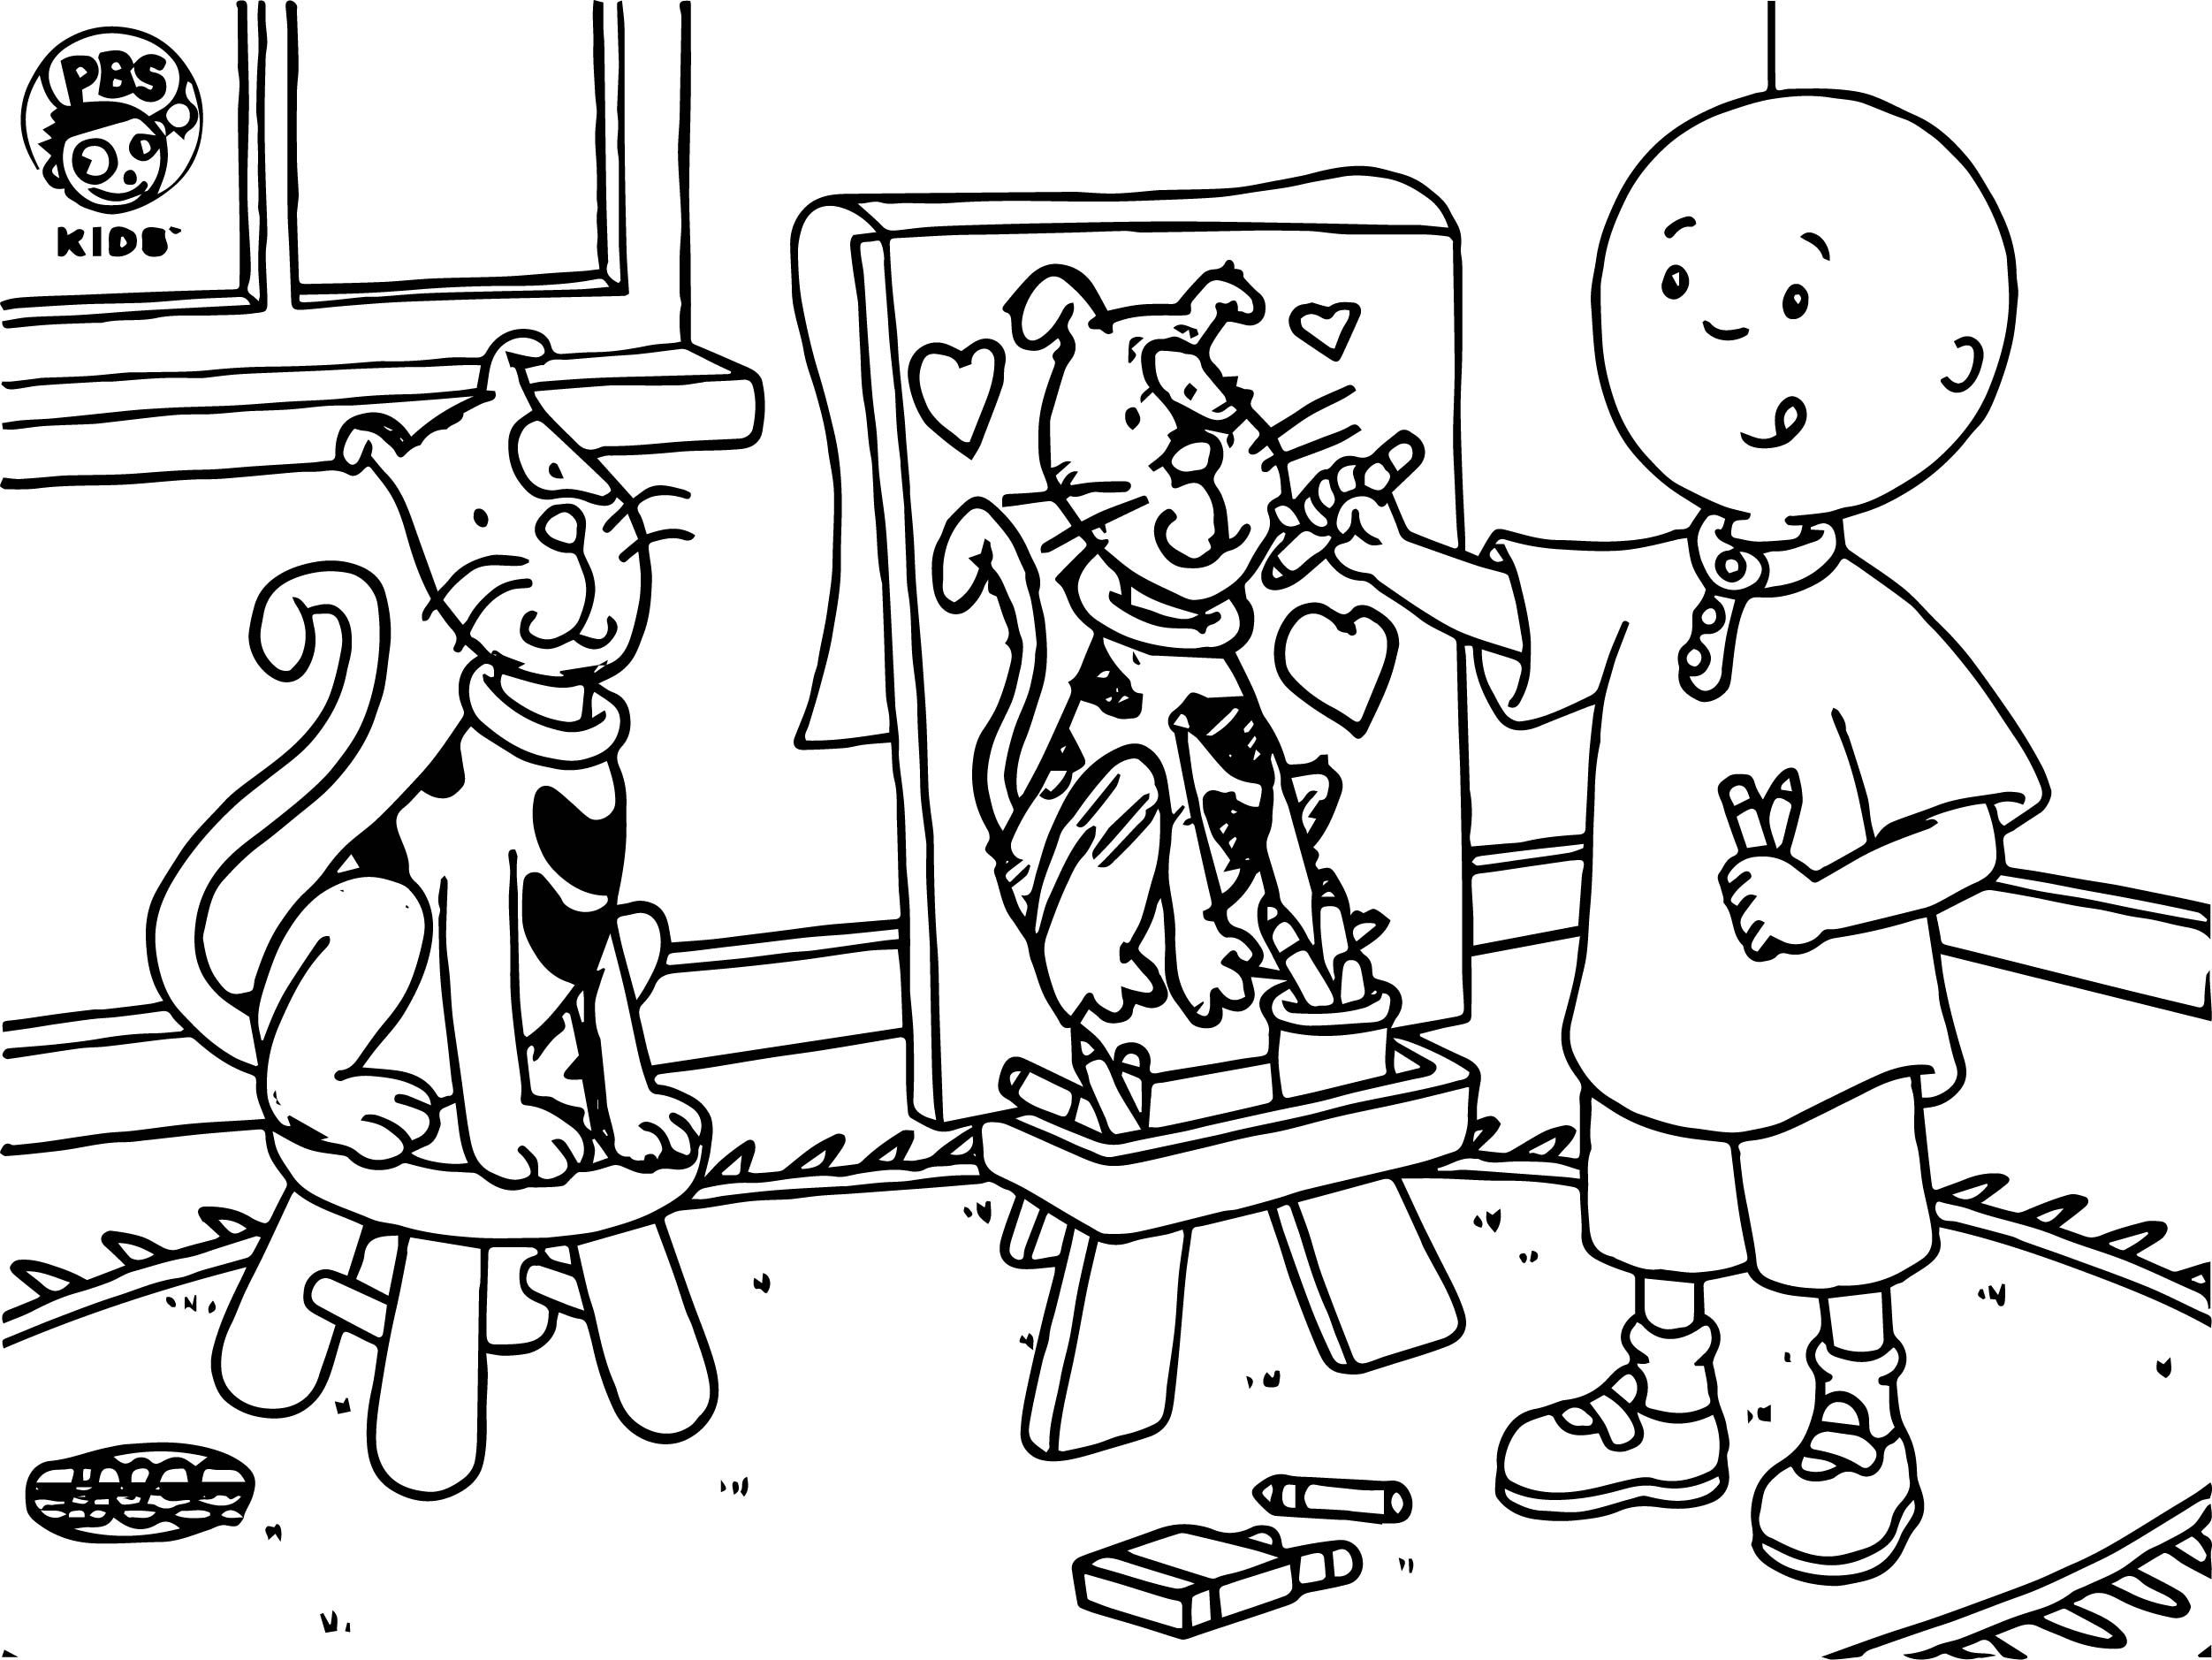 Cool Caillou Painting Cat Coloring Page Cat Coloring Page Coloring Pages Pumpkin Coloring Pages